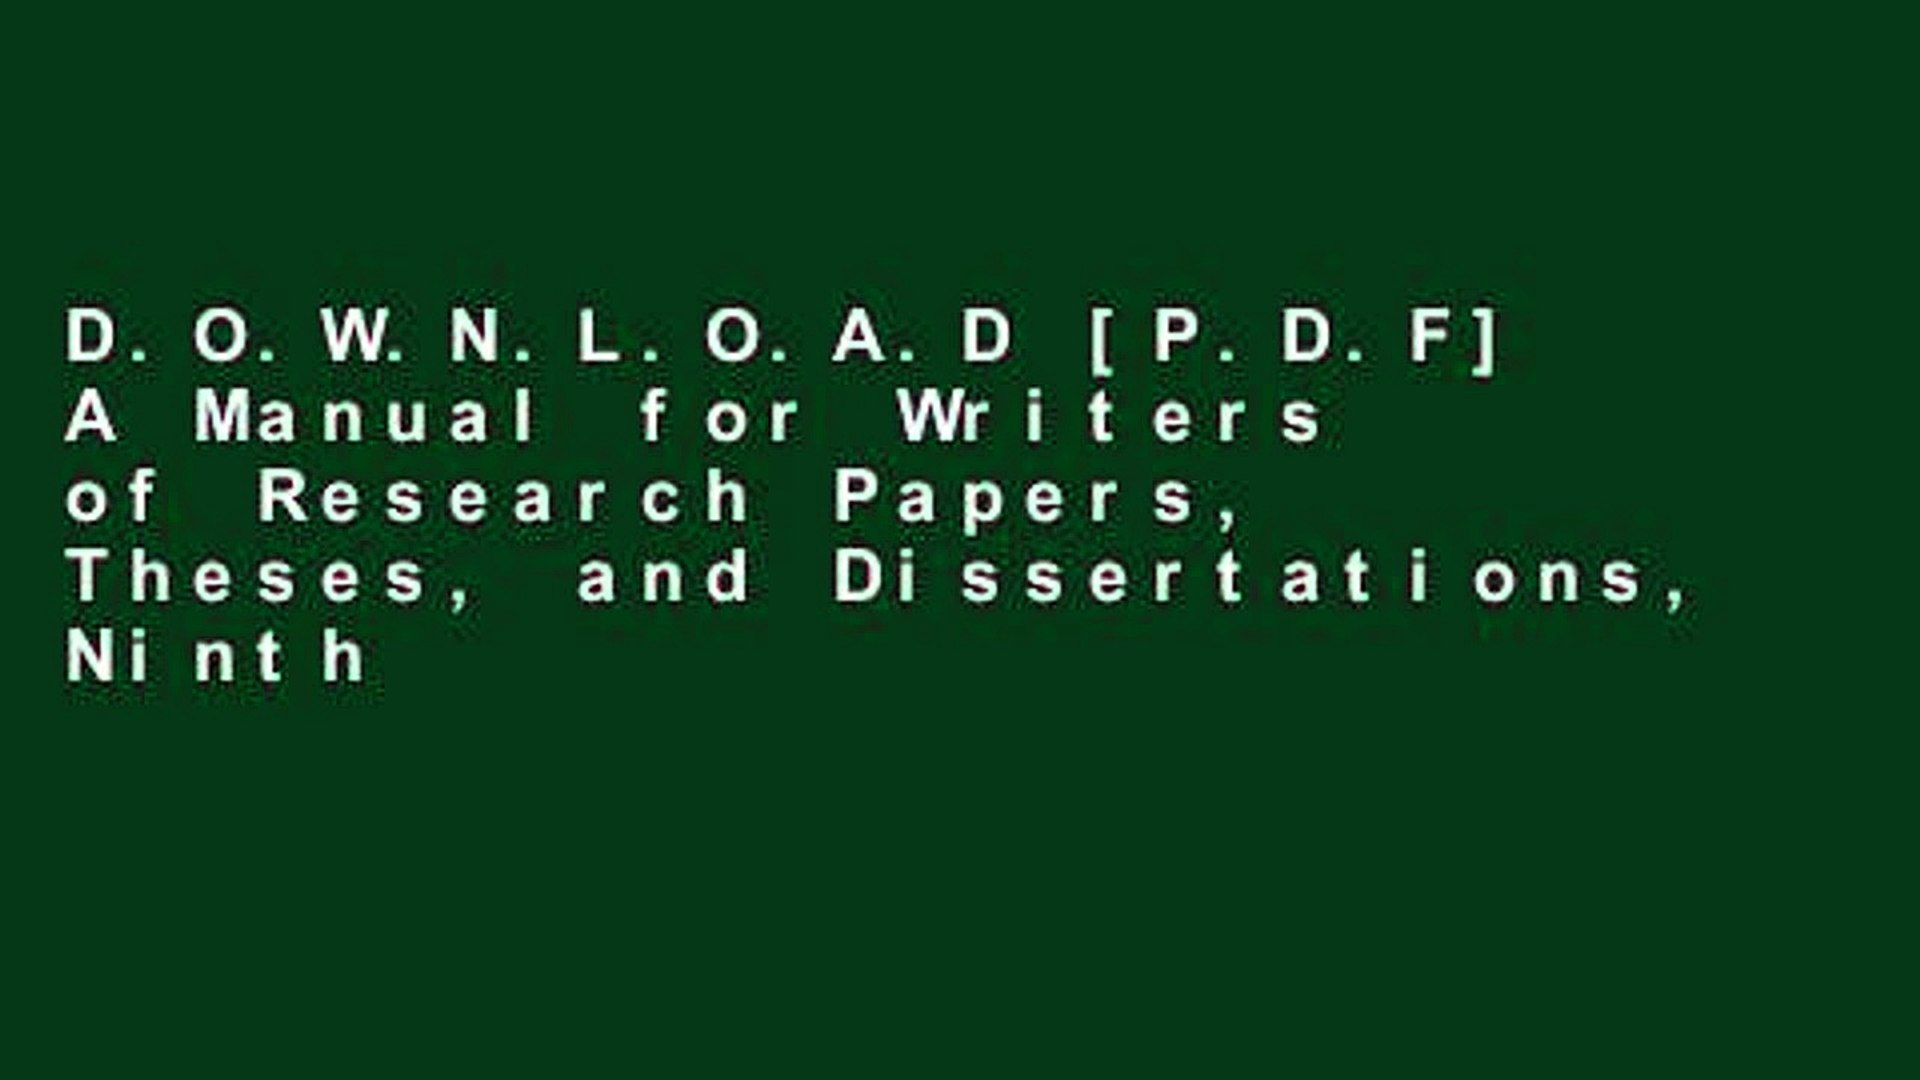 025 Manual For Writers Of Researchs Theses And Dissertations X1080 Cmg Sensational A Research Papers Eighth Edition Pdf 9th 8th Full